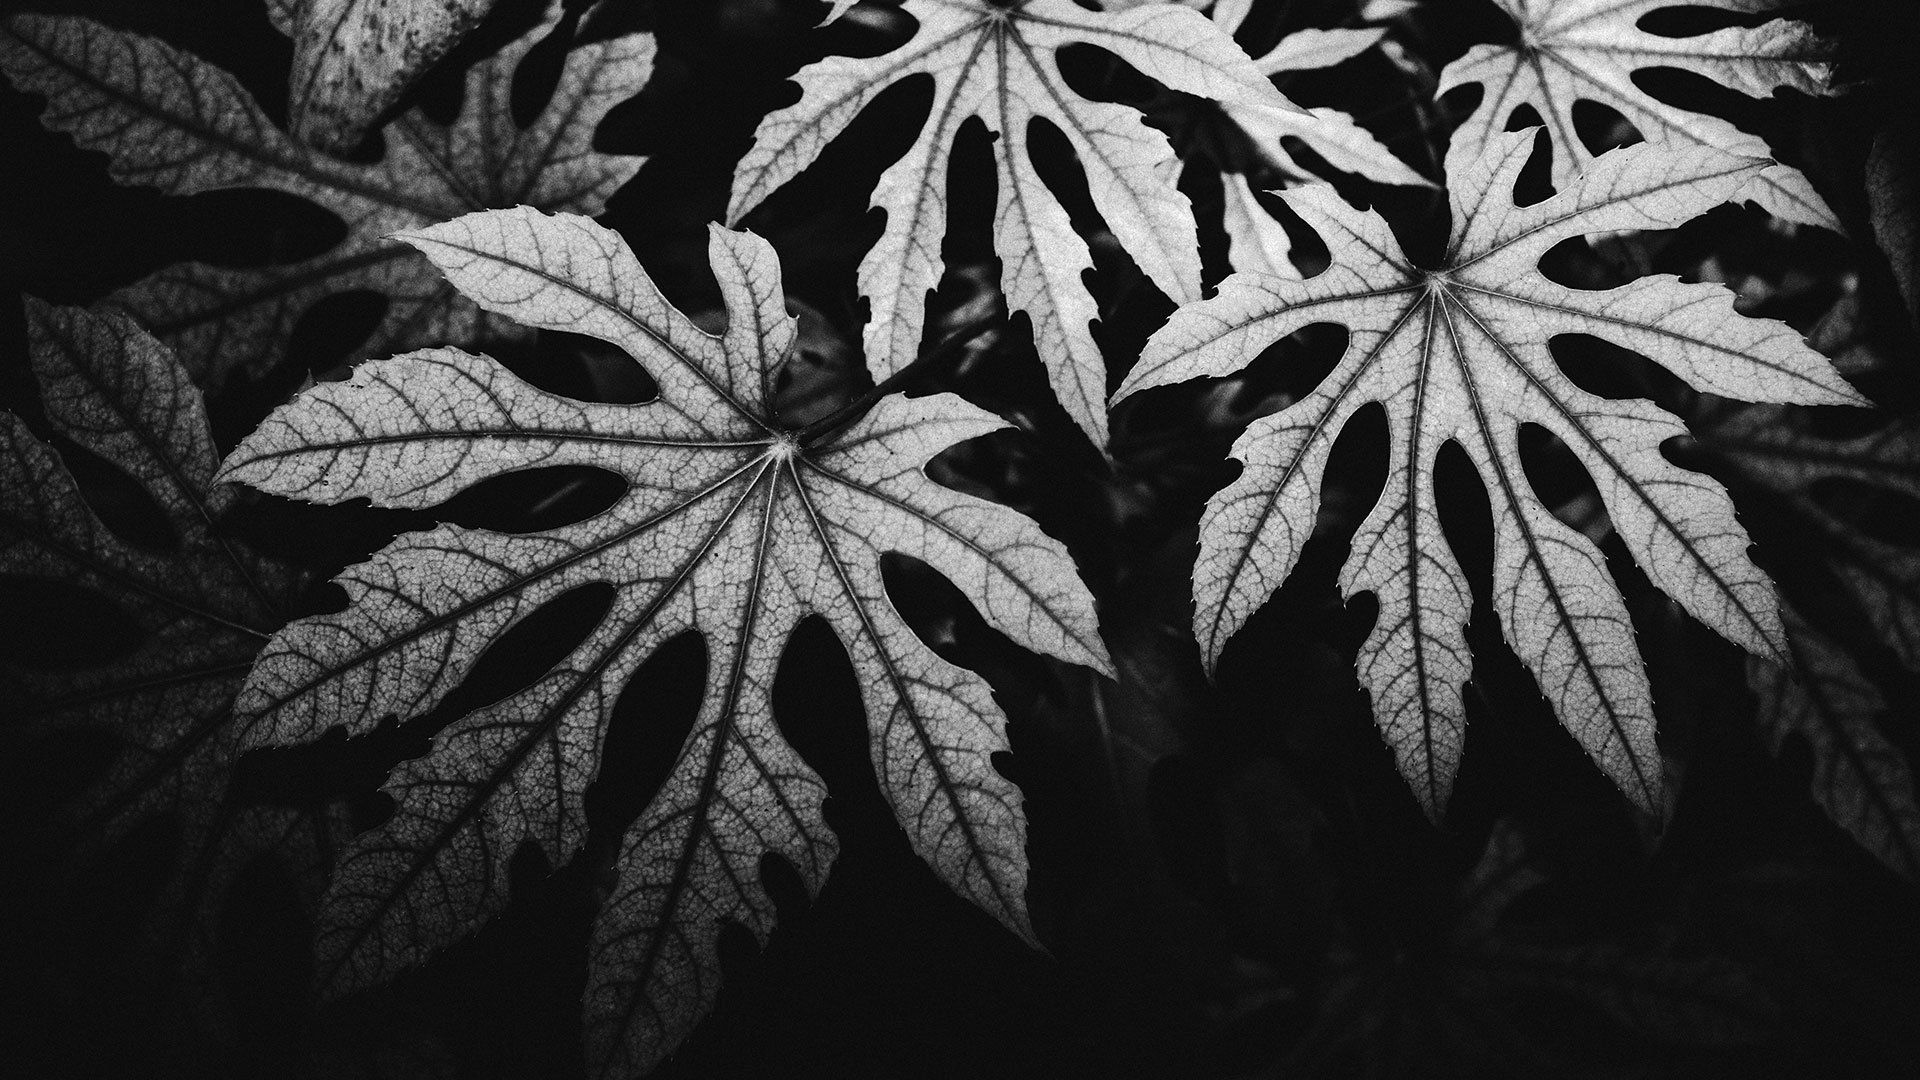 Black and white image of leaves